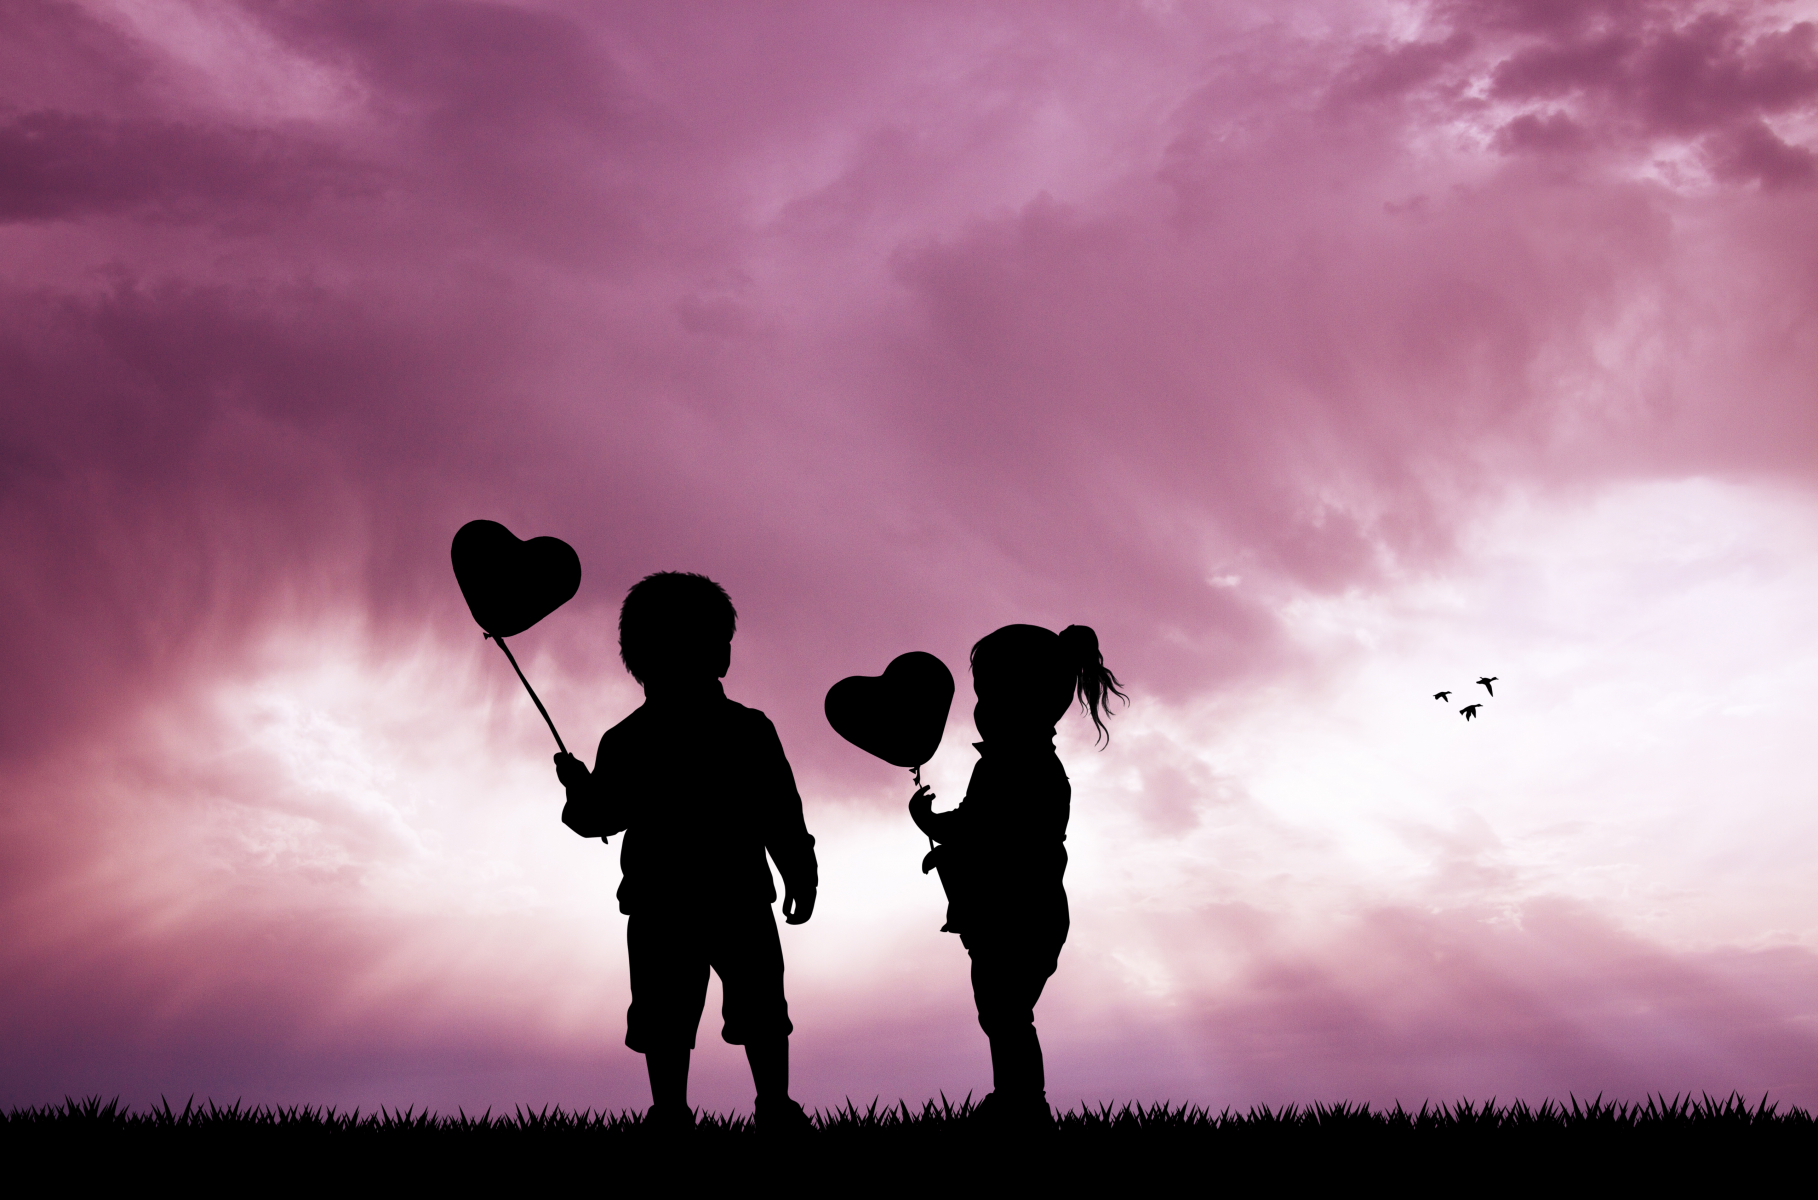 10087695-childrens-with-balloons